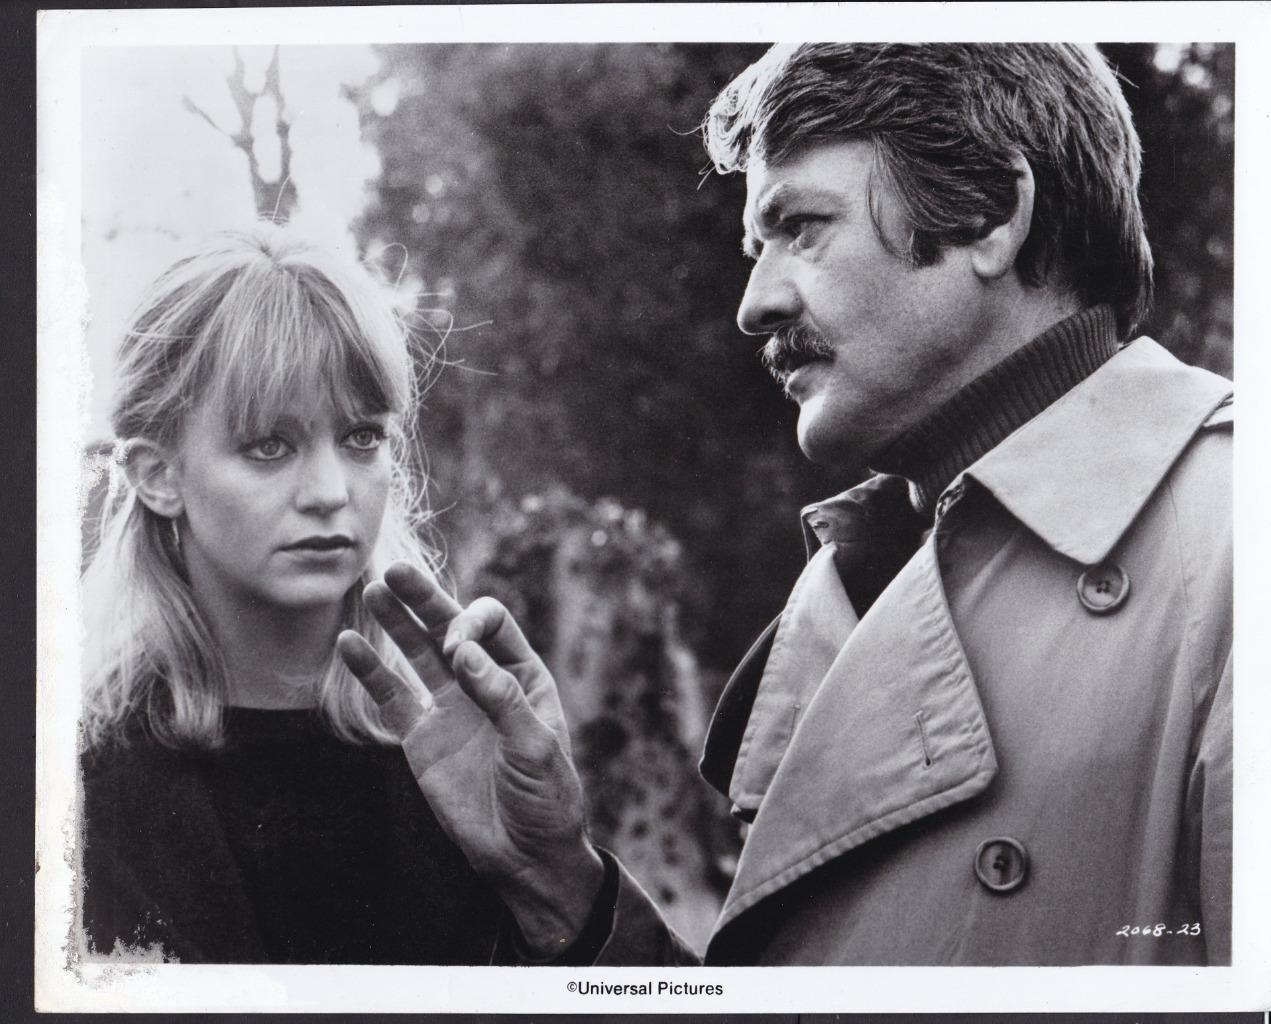 Goldie Hawn and Hal Holbrook in The Girl from Petrovka (1974)